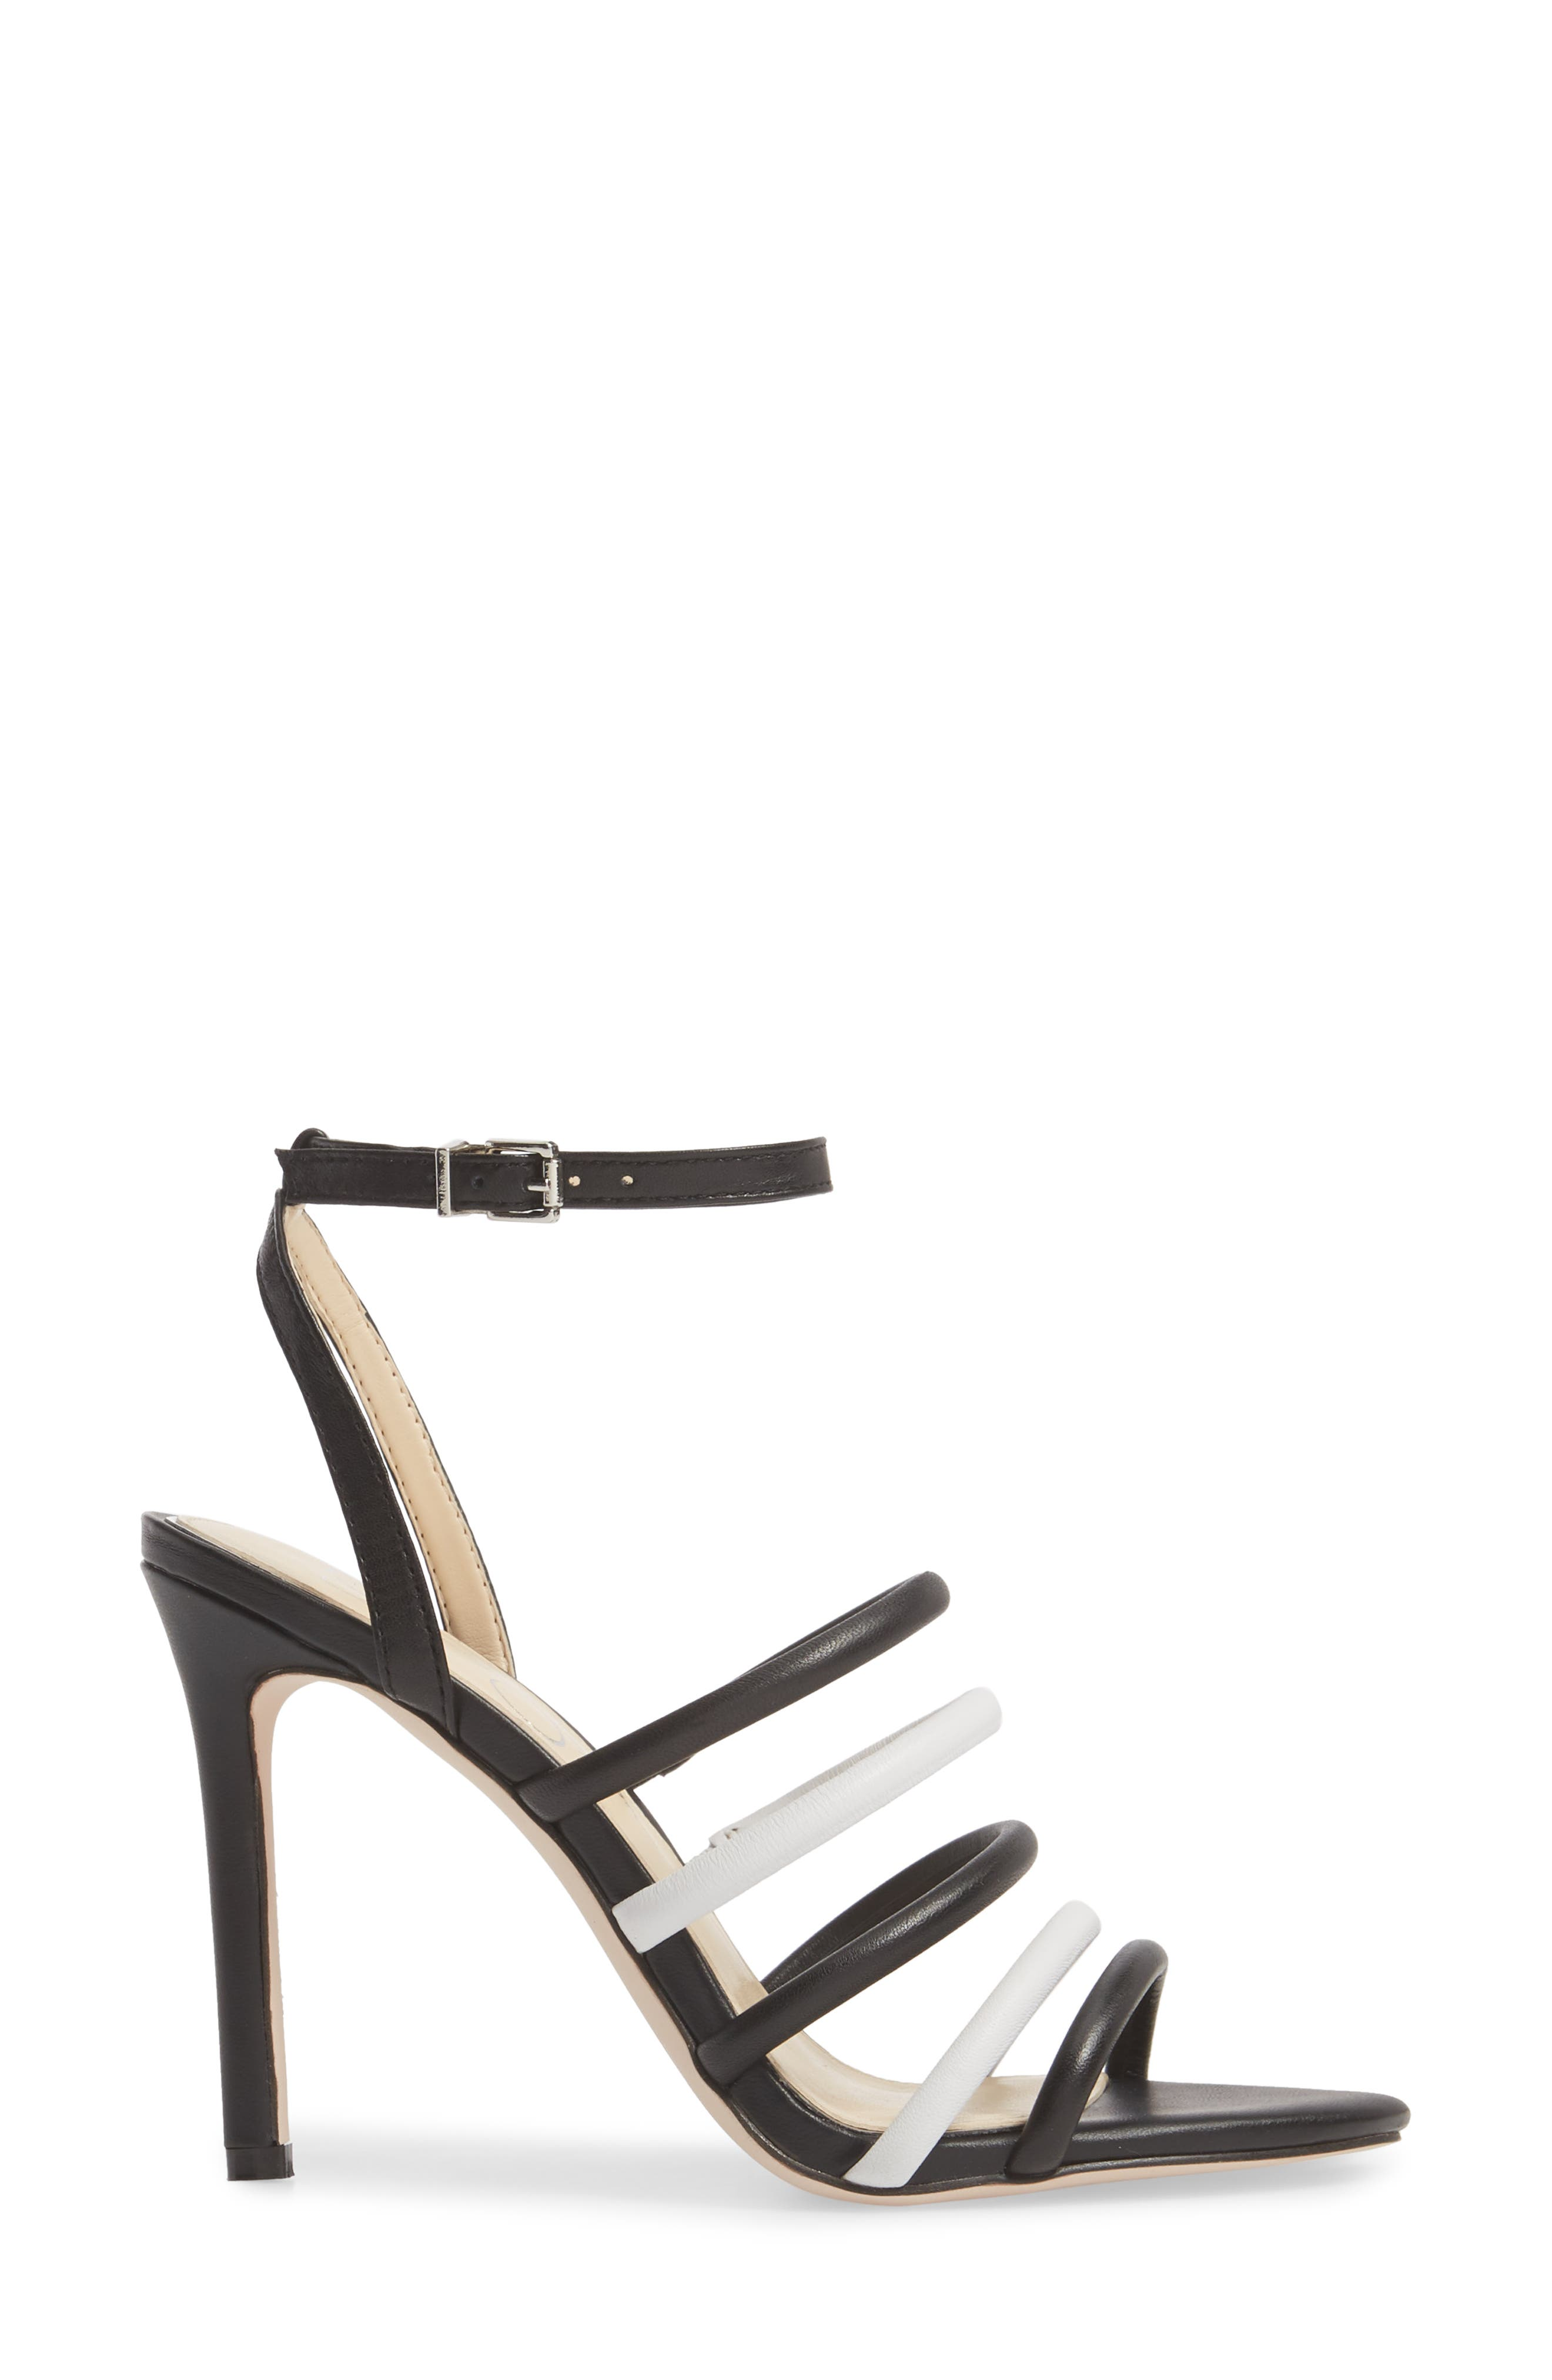 Joselle Strappy Sandal,                             Alternate thumbnail 7, color,